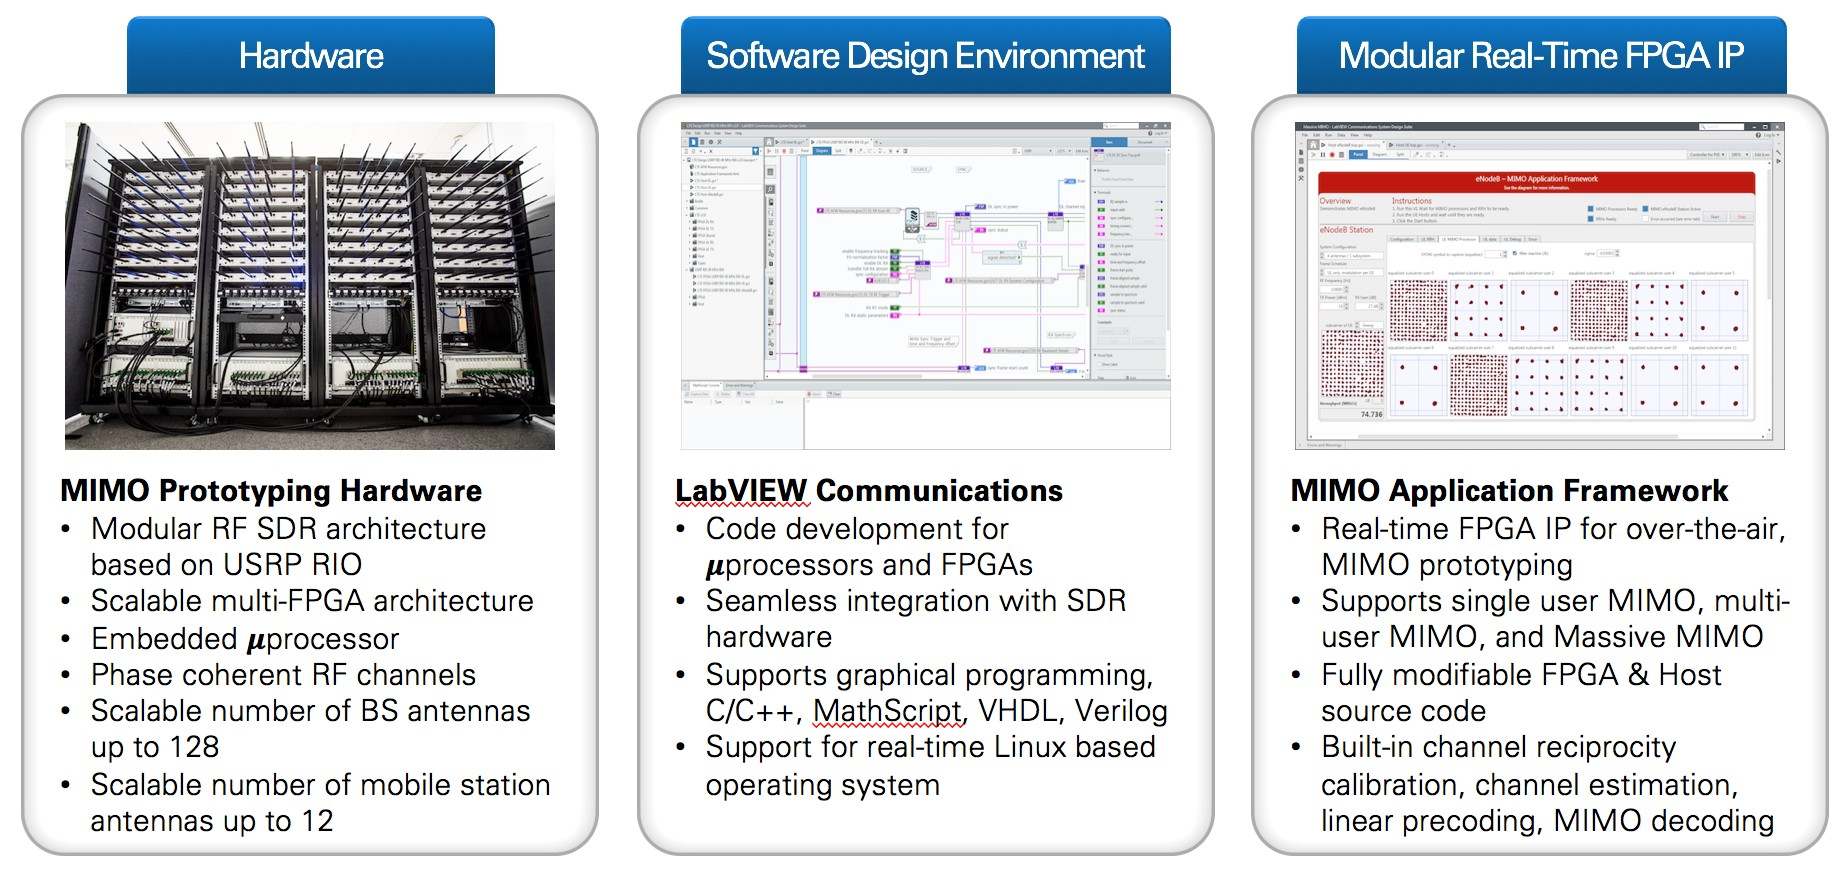 The MIMO Prototyping System is a complete multiuser MIMO prototyping solution including hardware, software, and IP